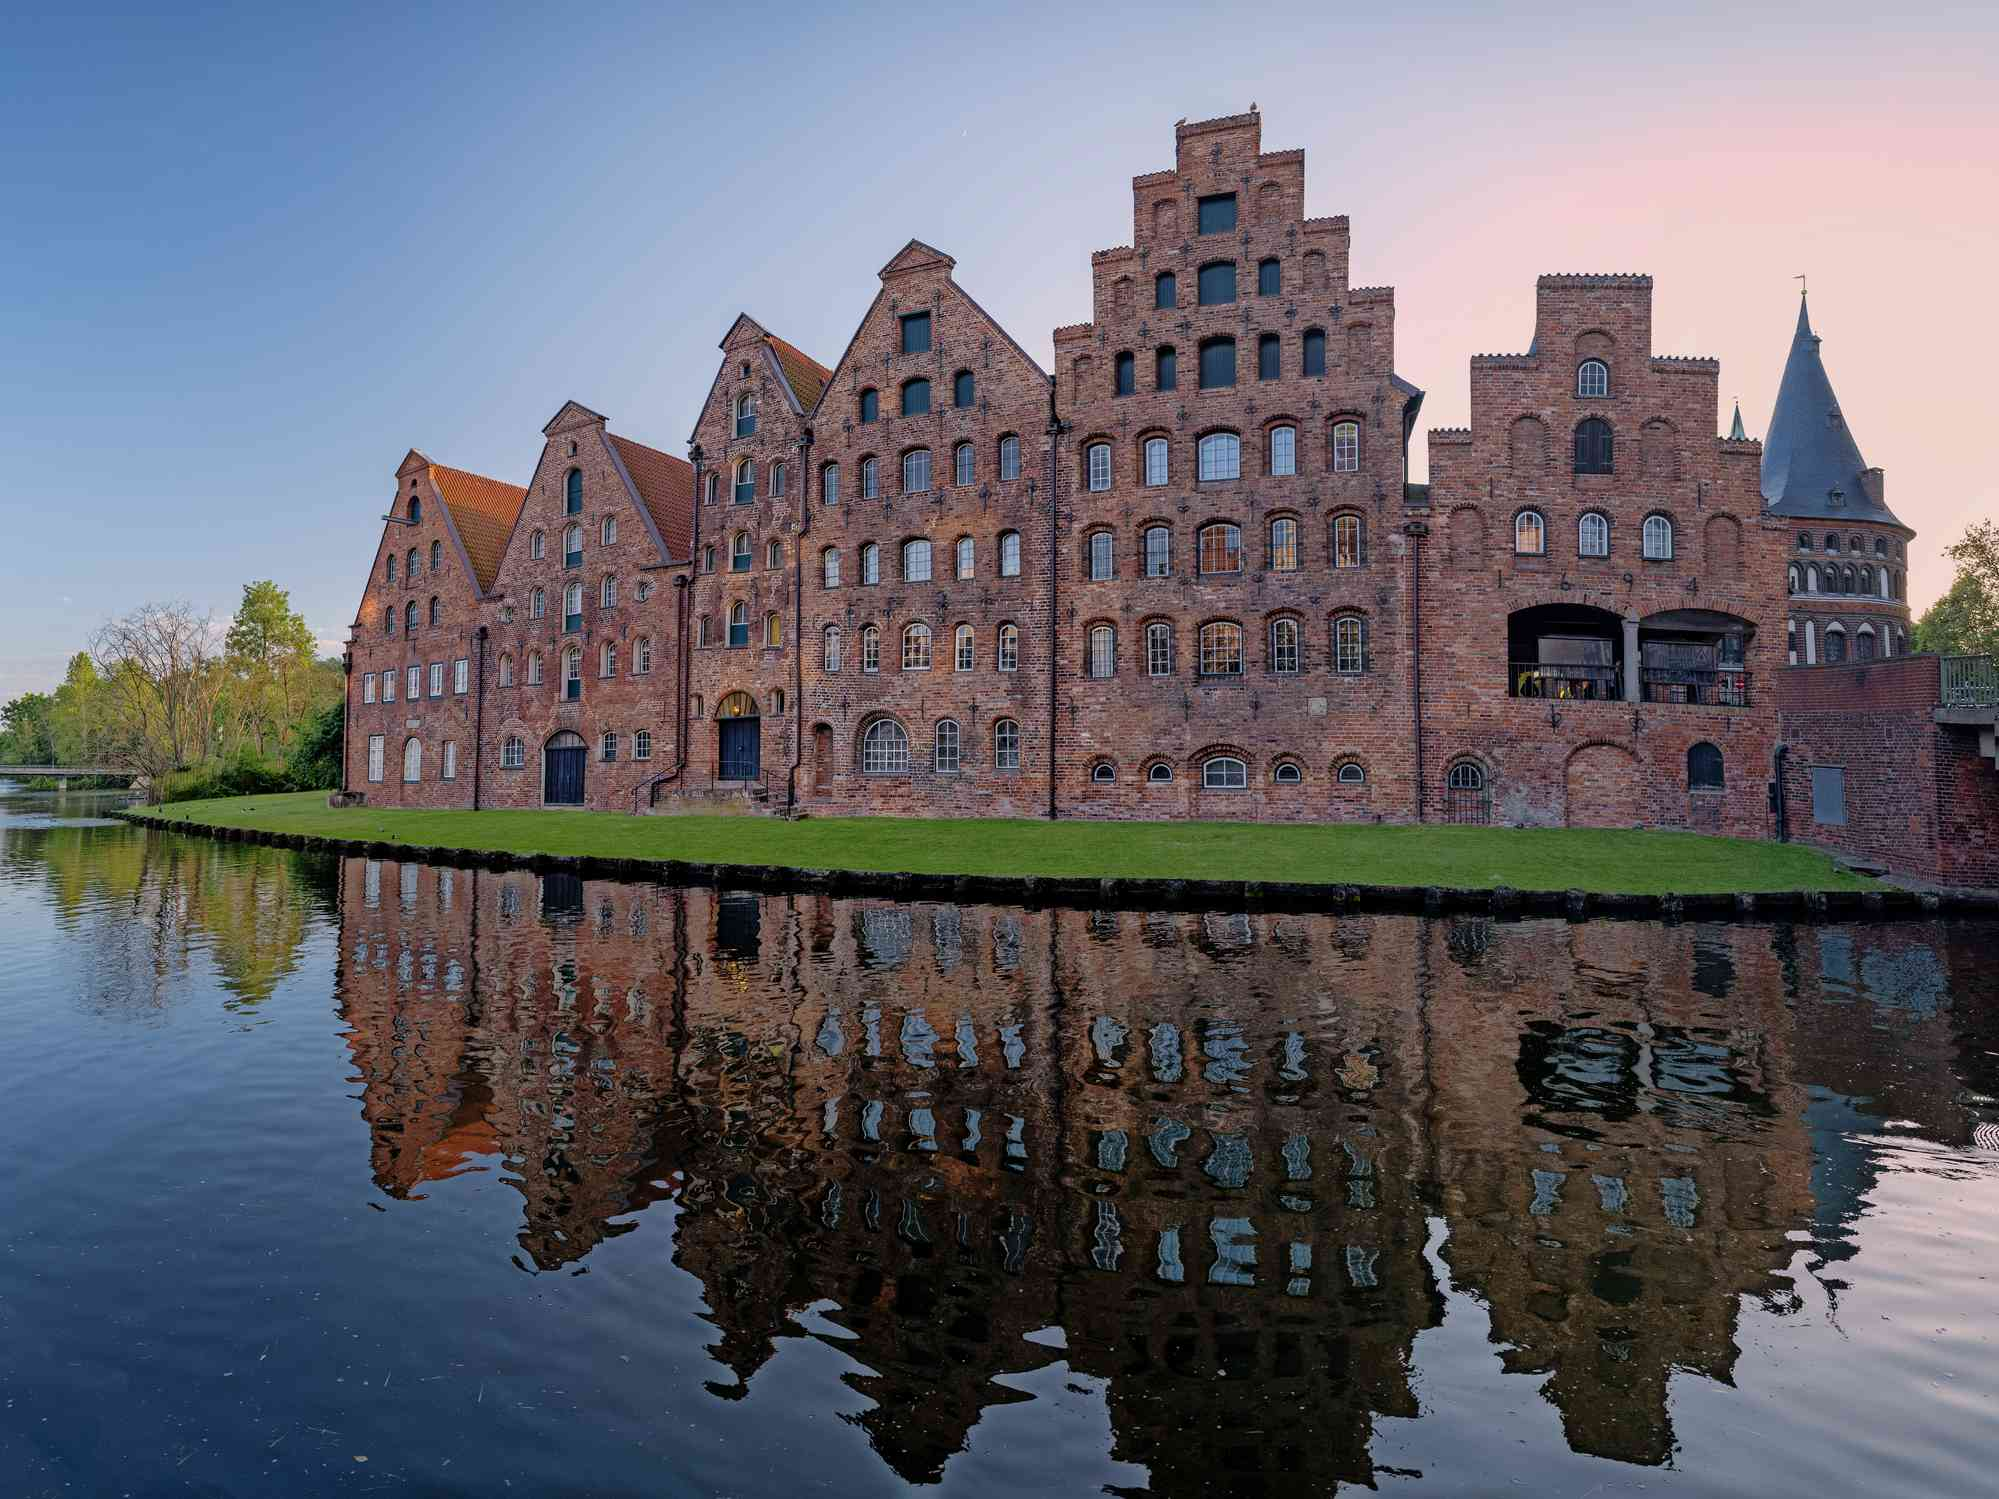 6 narrow brick warehoses of varying heights with pointed roofs on a riverbank